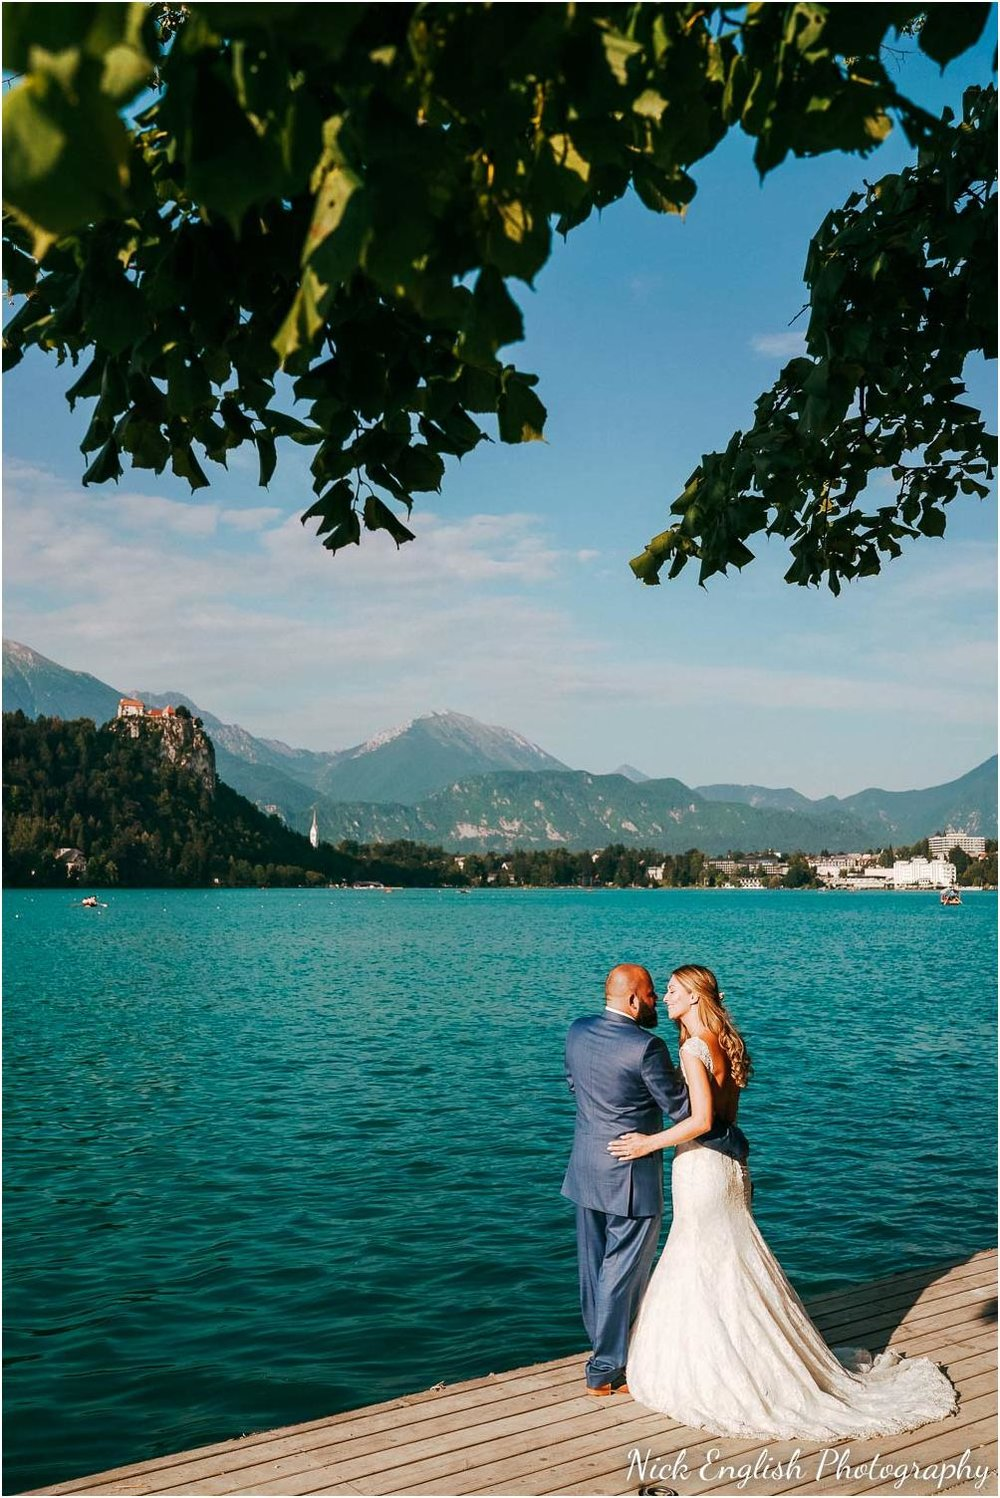 Destination_Wedding_Photographer_Slovenia_Nick_English_Photography-70-24.jpg